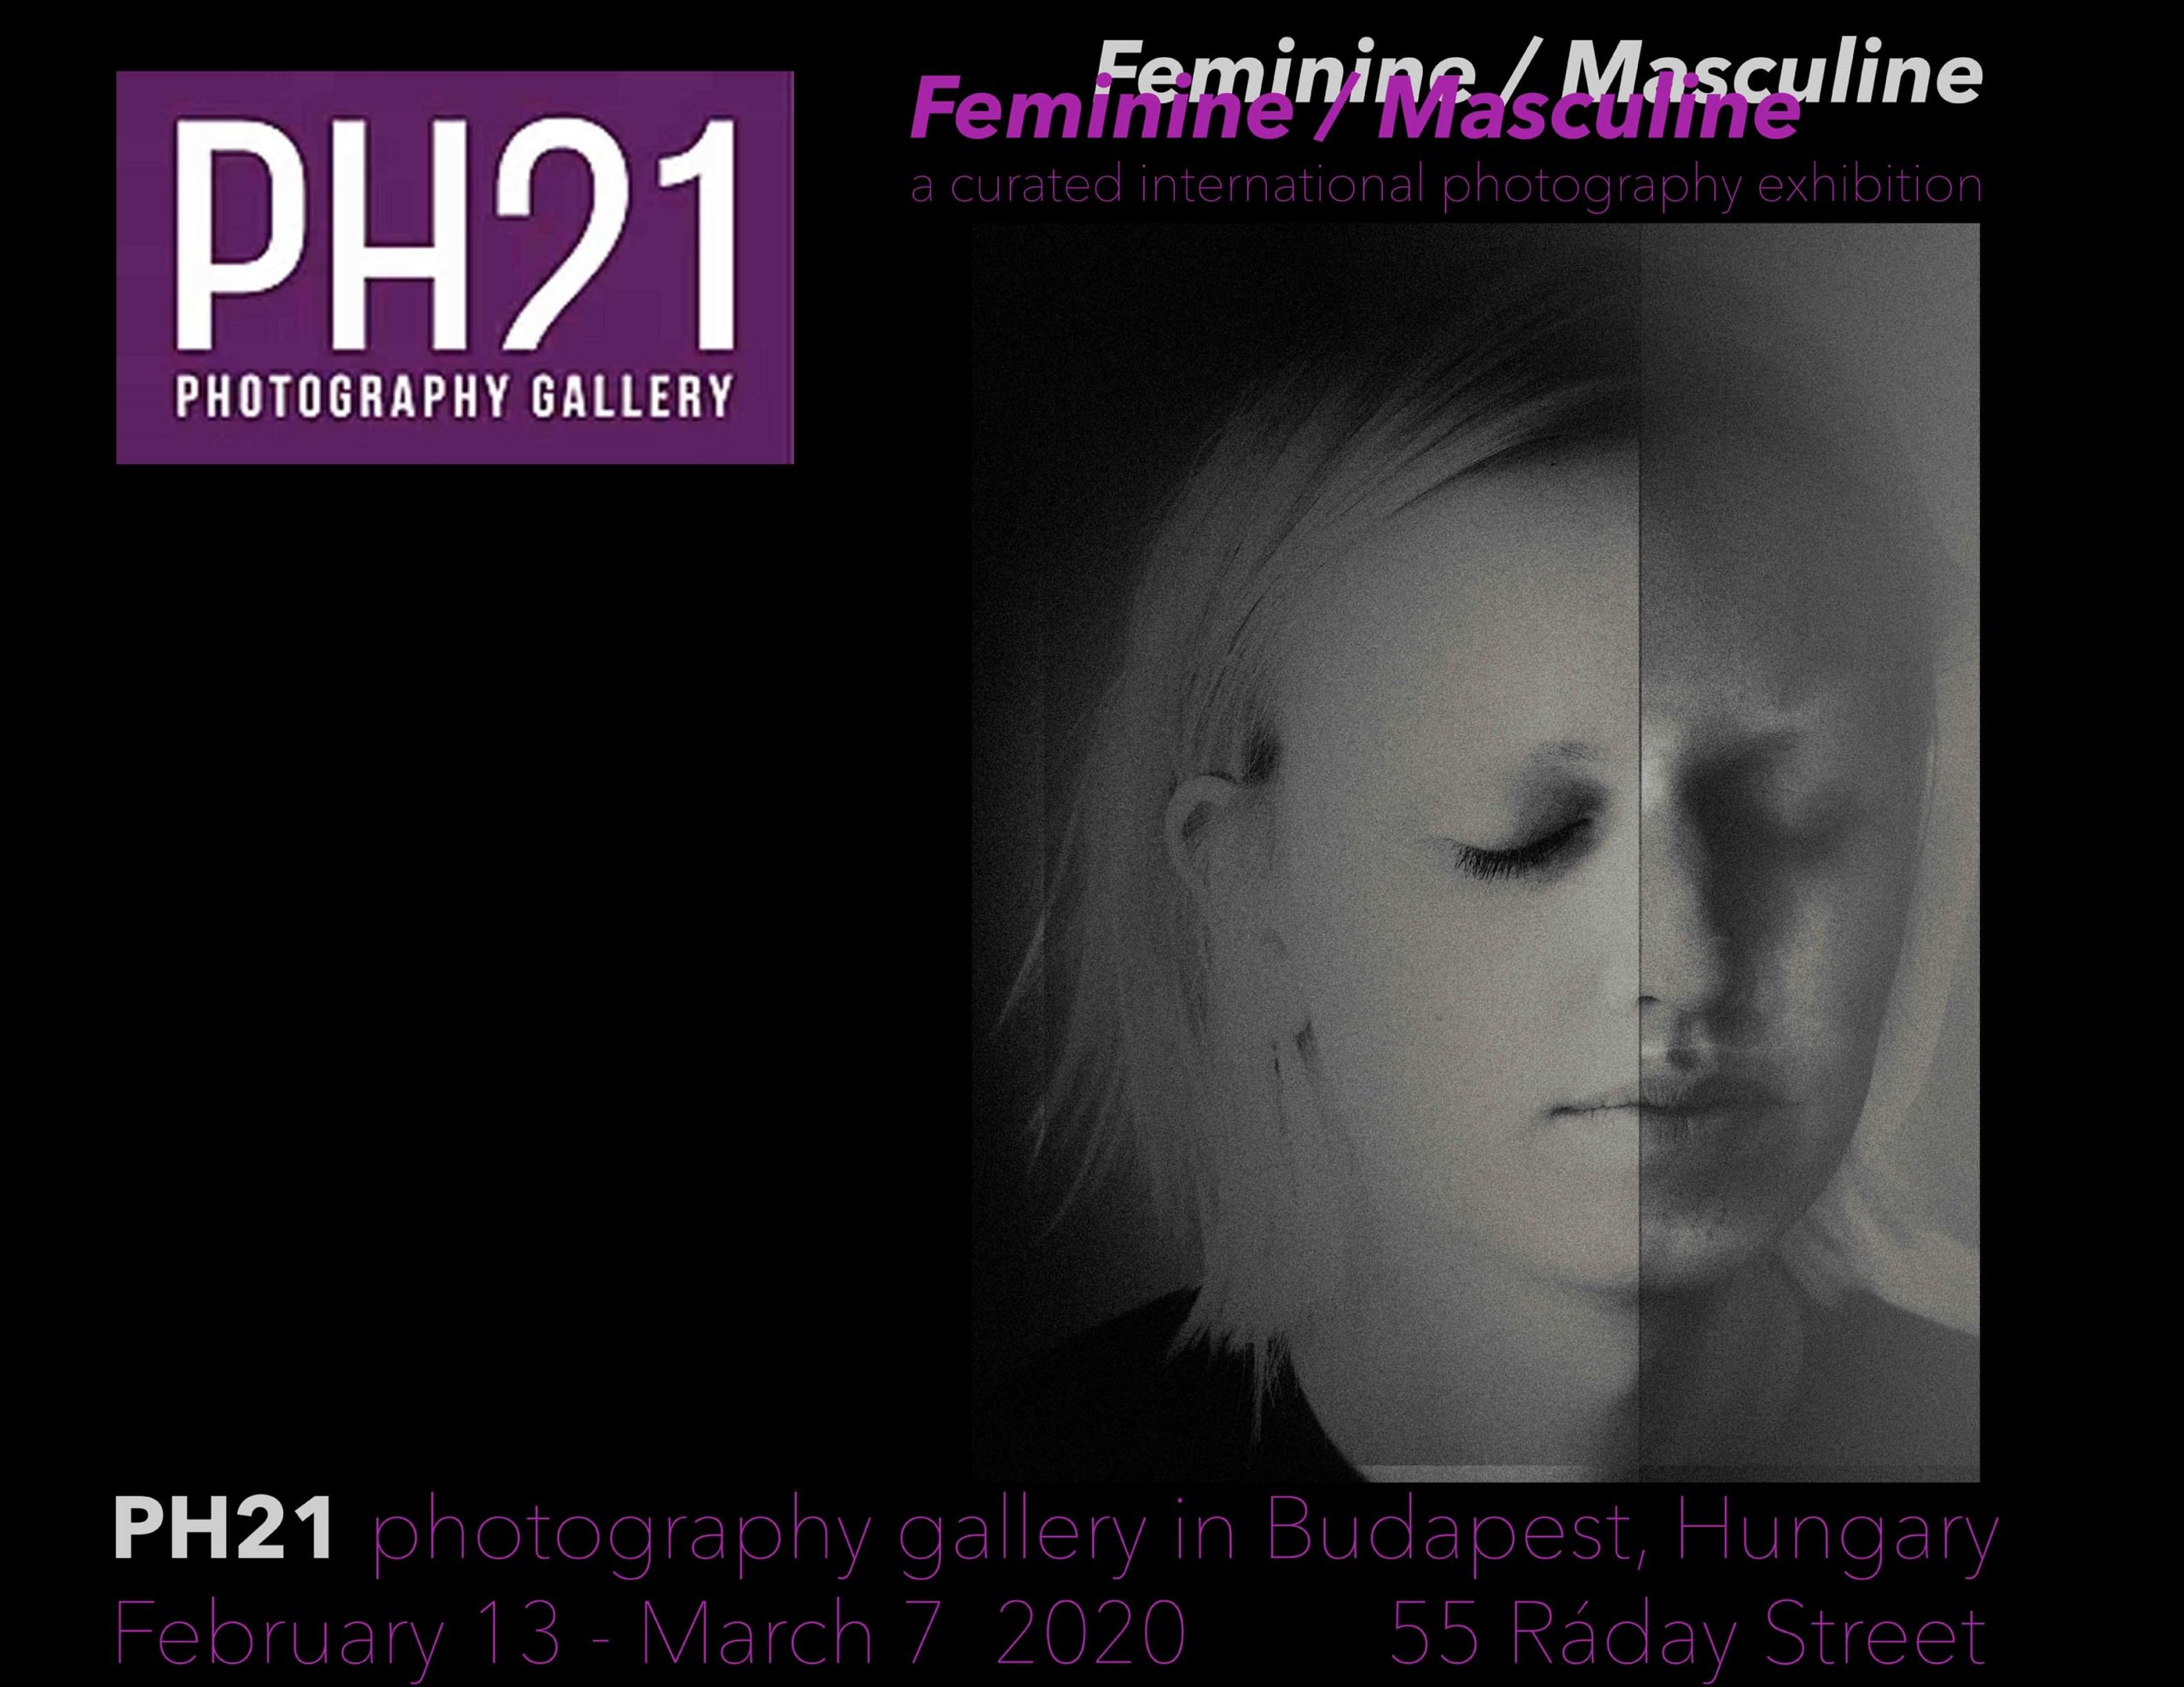 PH21_Exhibition Feminine/Masculine